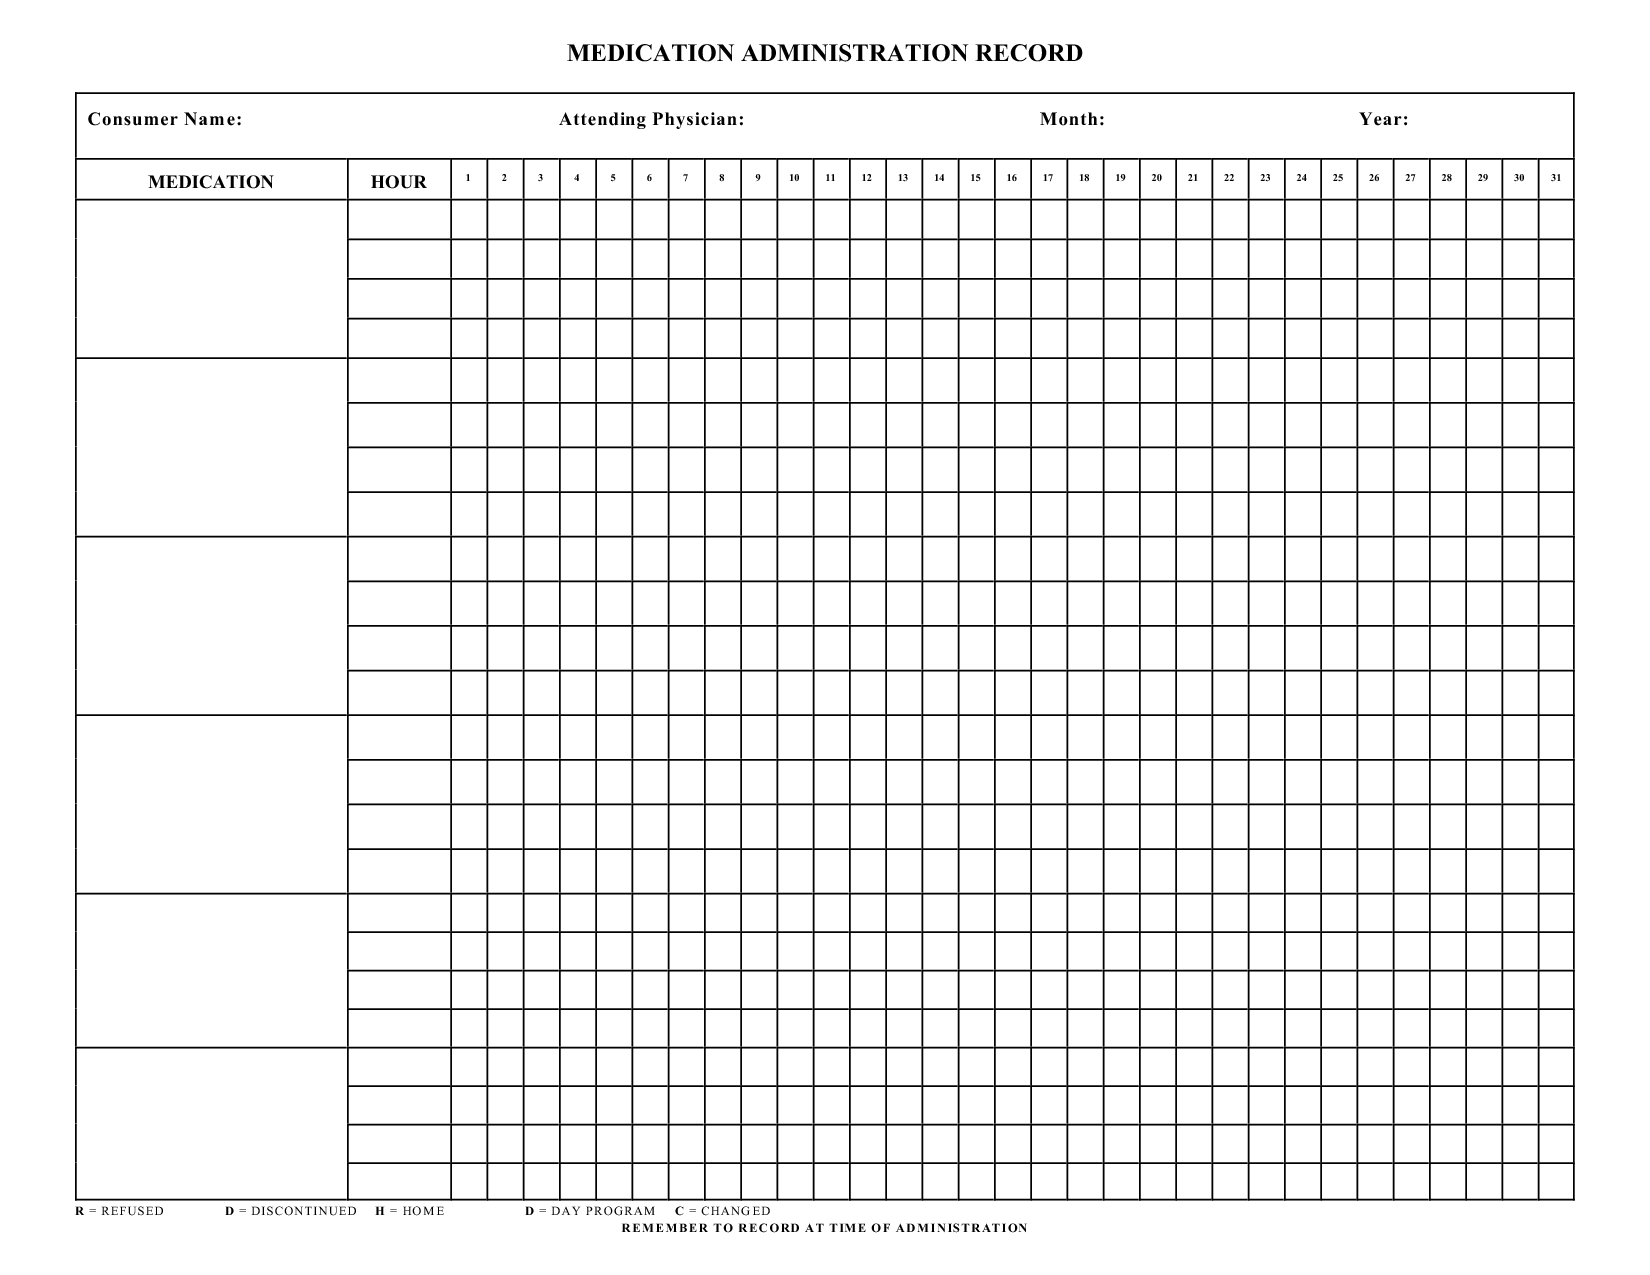 Blank+Medication+Administration+Record+Template | Work | Pinterest - Medication Chart Printable Free